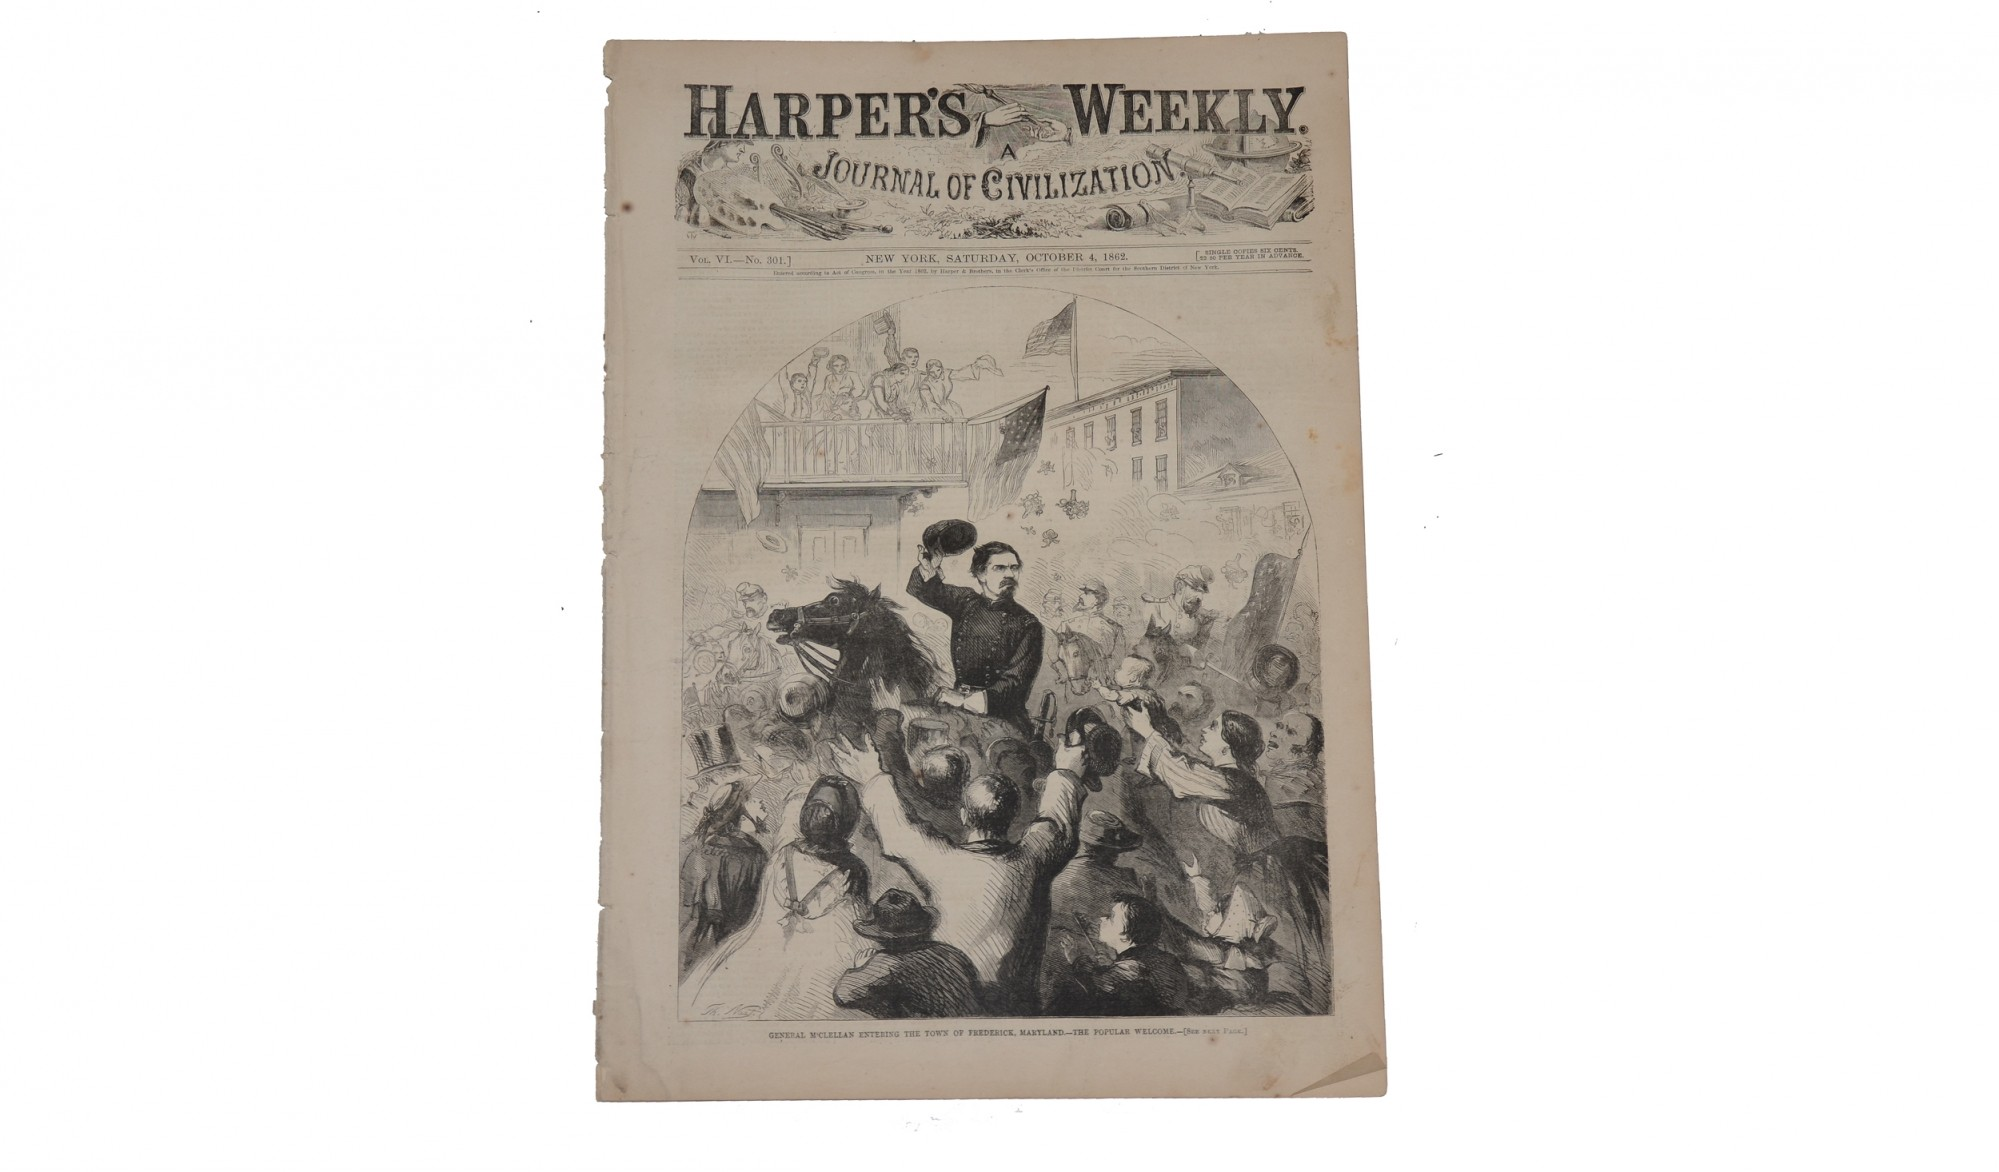 HARPER'S WEEKLY DATED OCTOBER 4, 1862